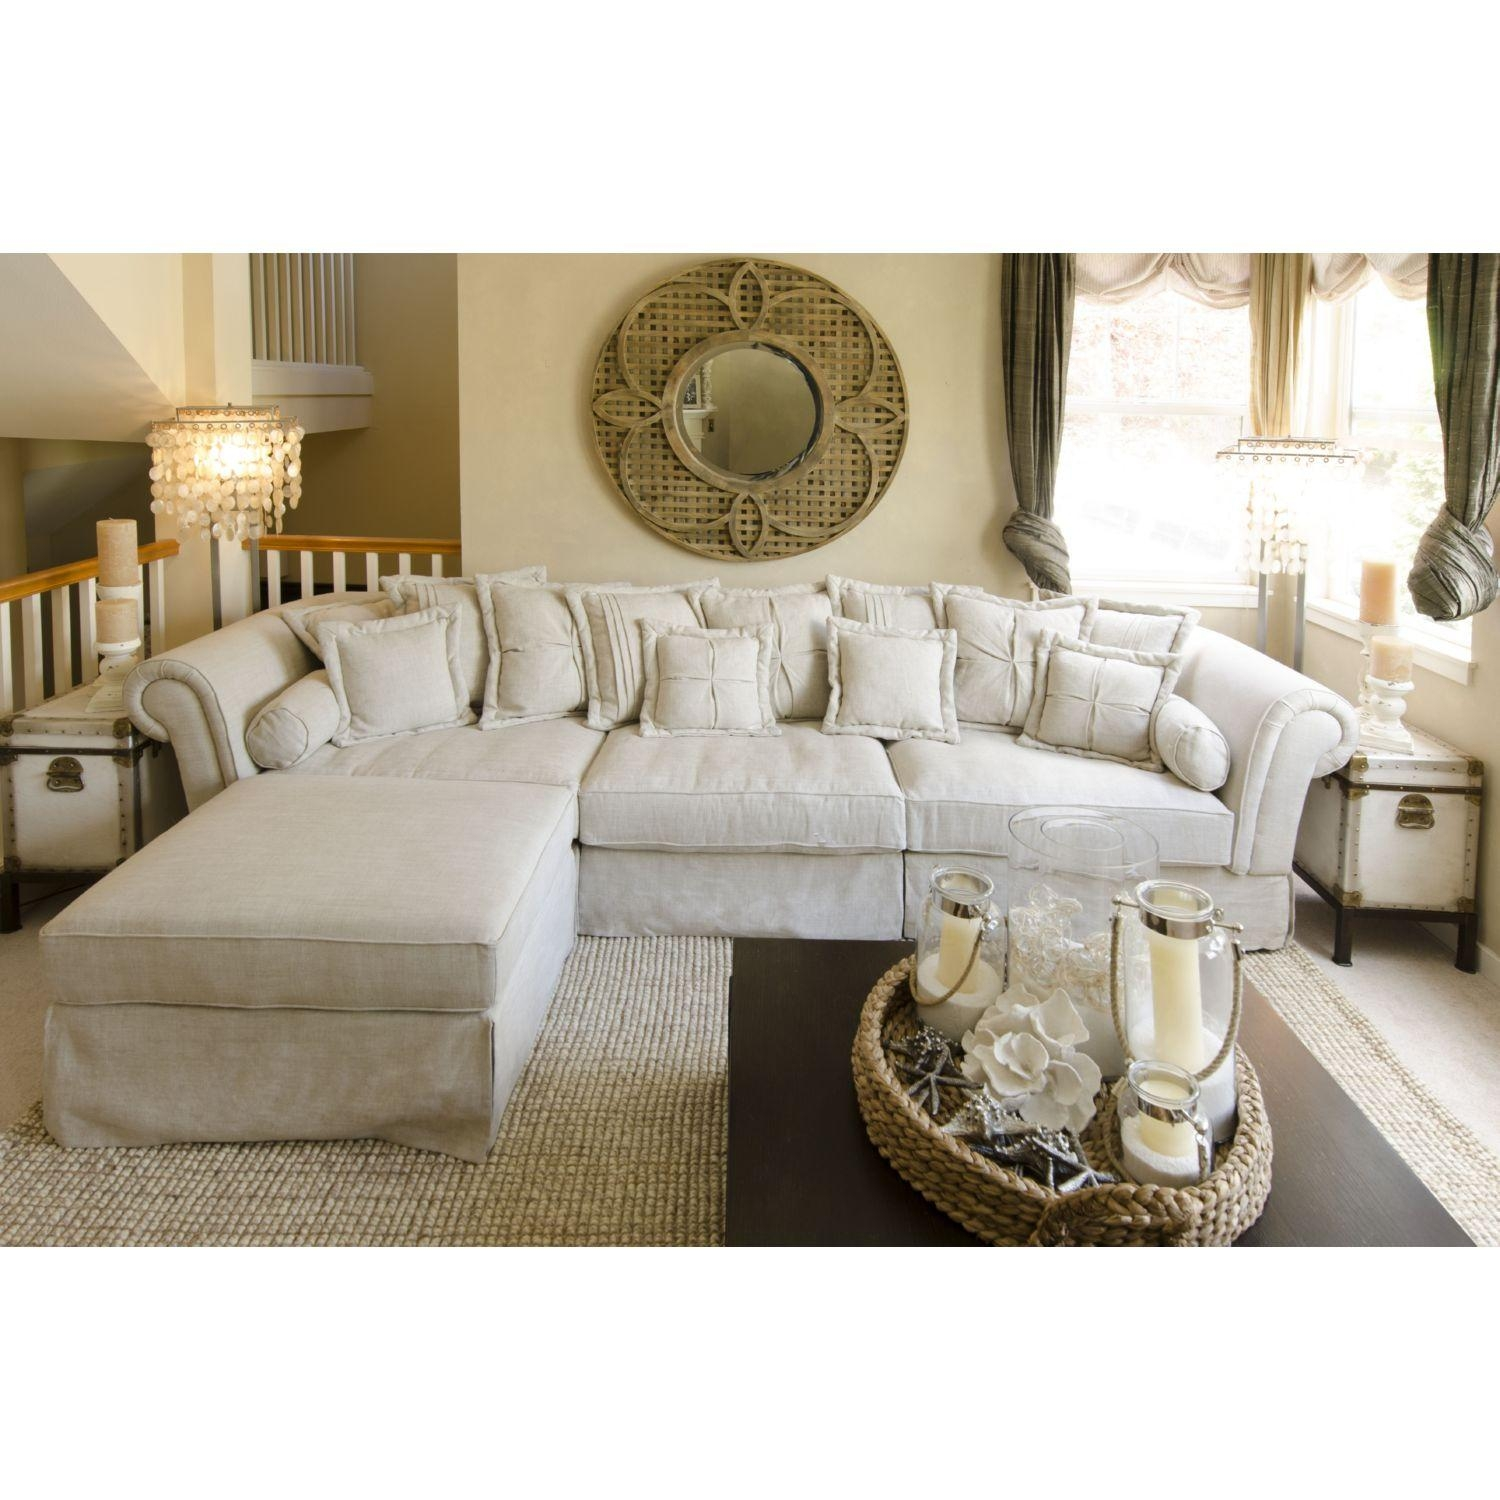 flower sofa covers most comfortable bed nz 20 top shabby chic slipcovers ideas